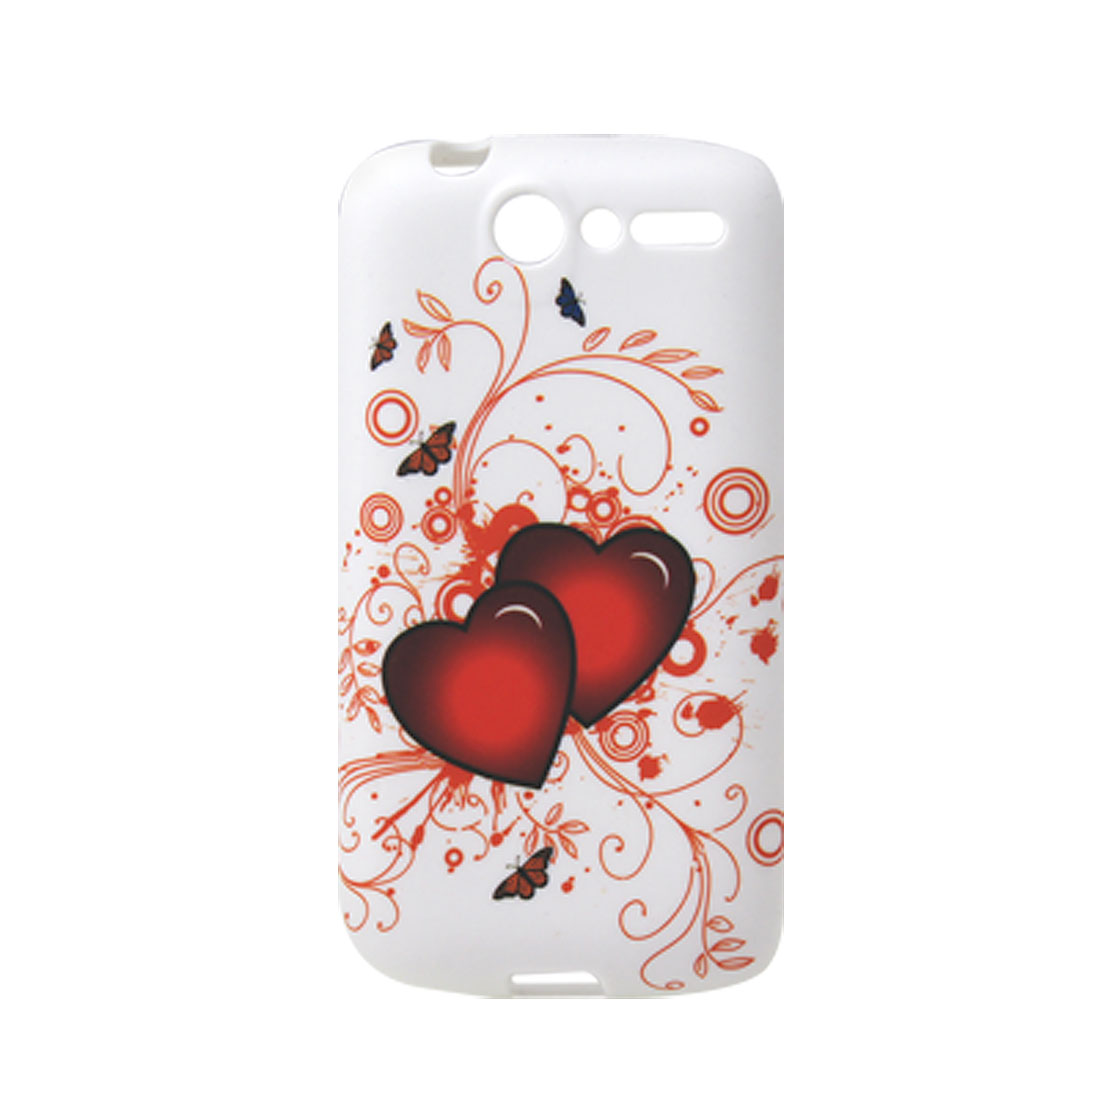 Soft Plastic Heart Butterfly Pattern White Cover for HTC Desire G7